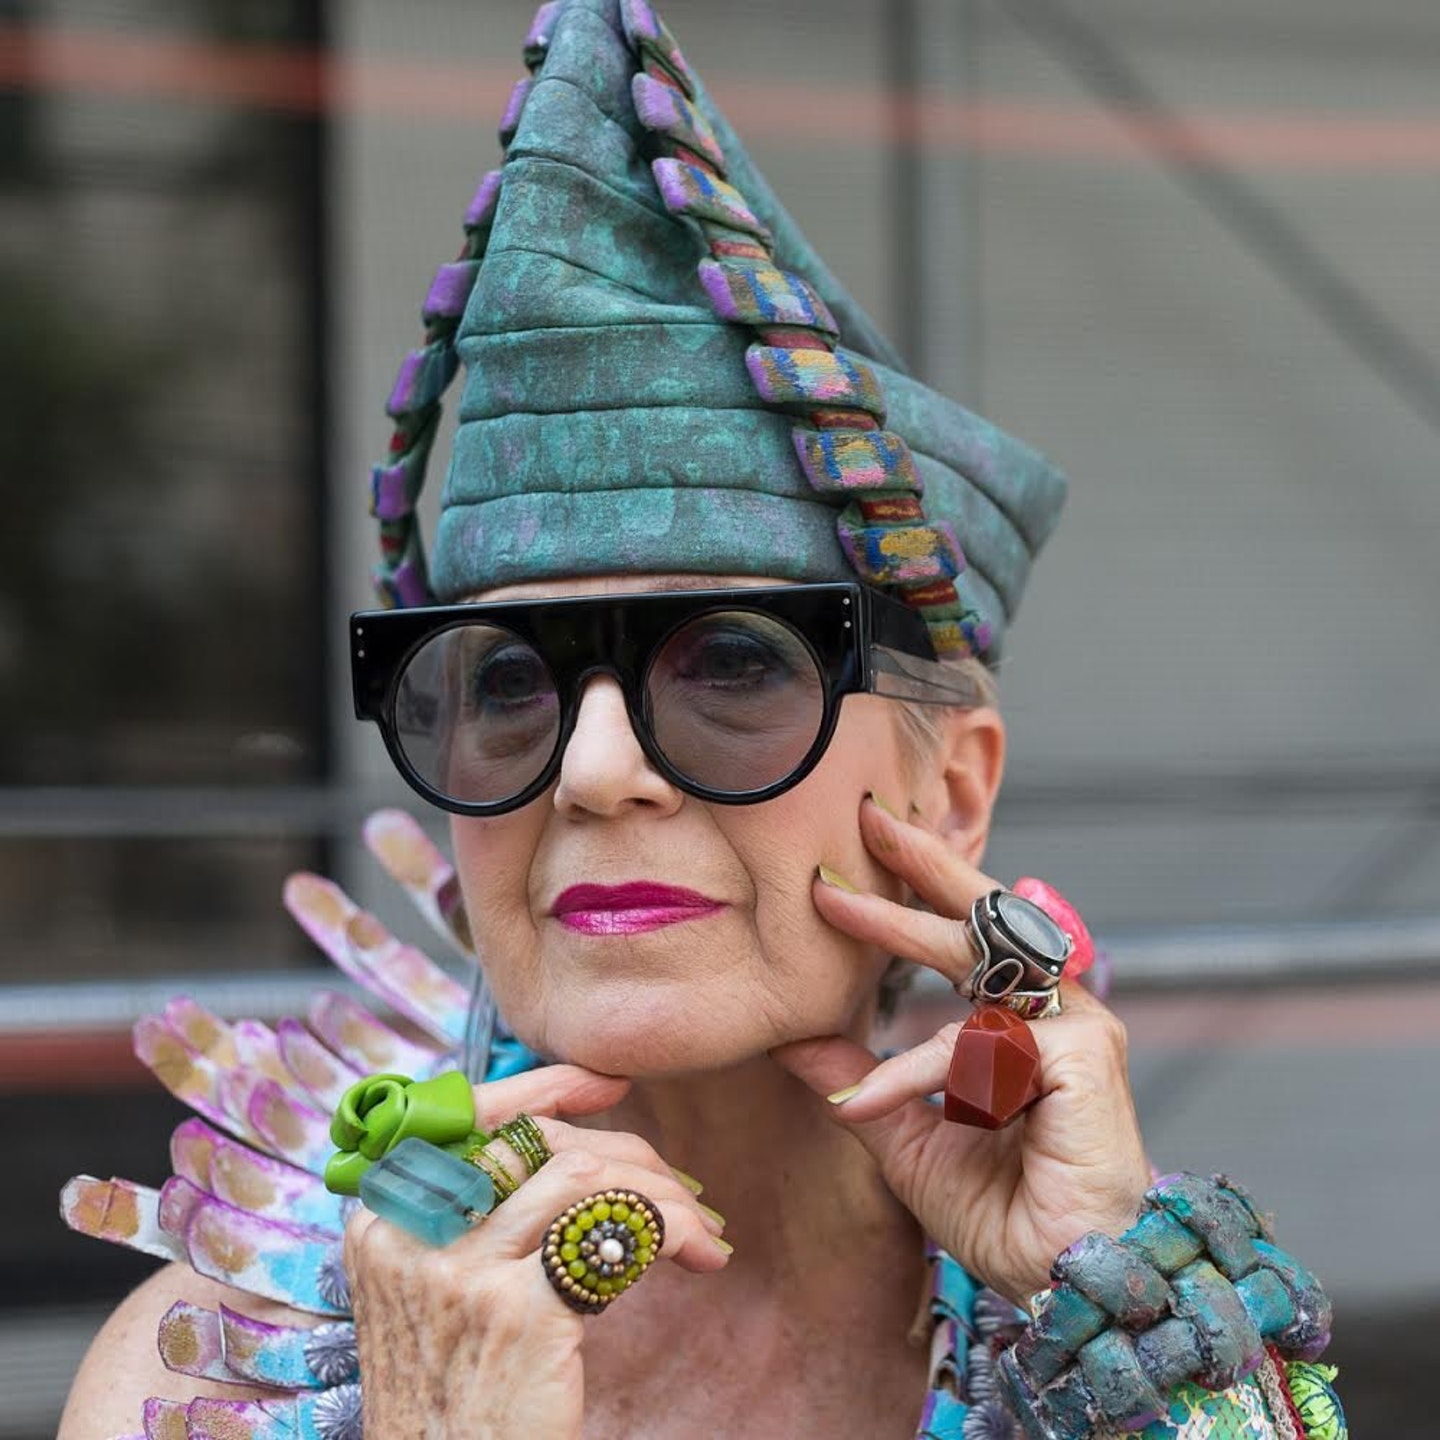 Artist Debra Rapoport wearing a hat she made from paper towels. Photographed by Denton Taylor.